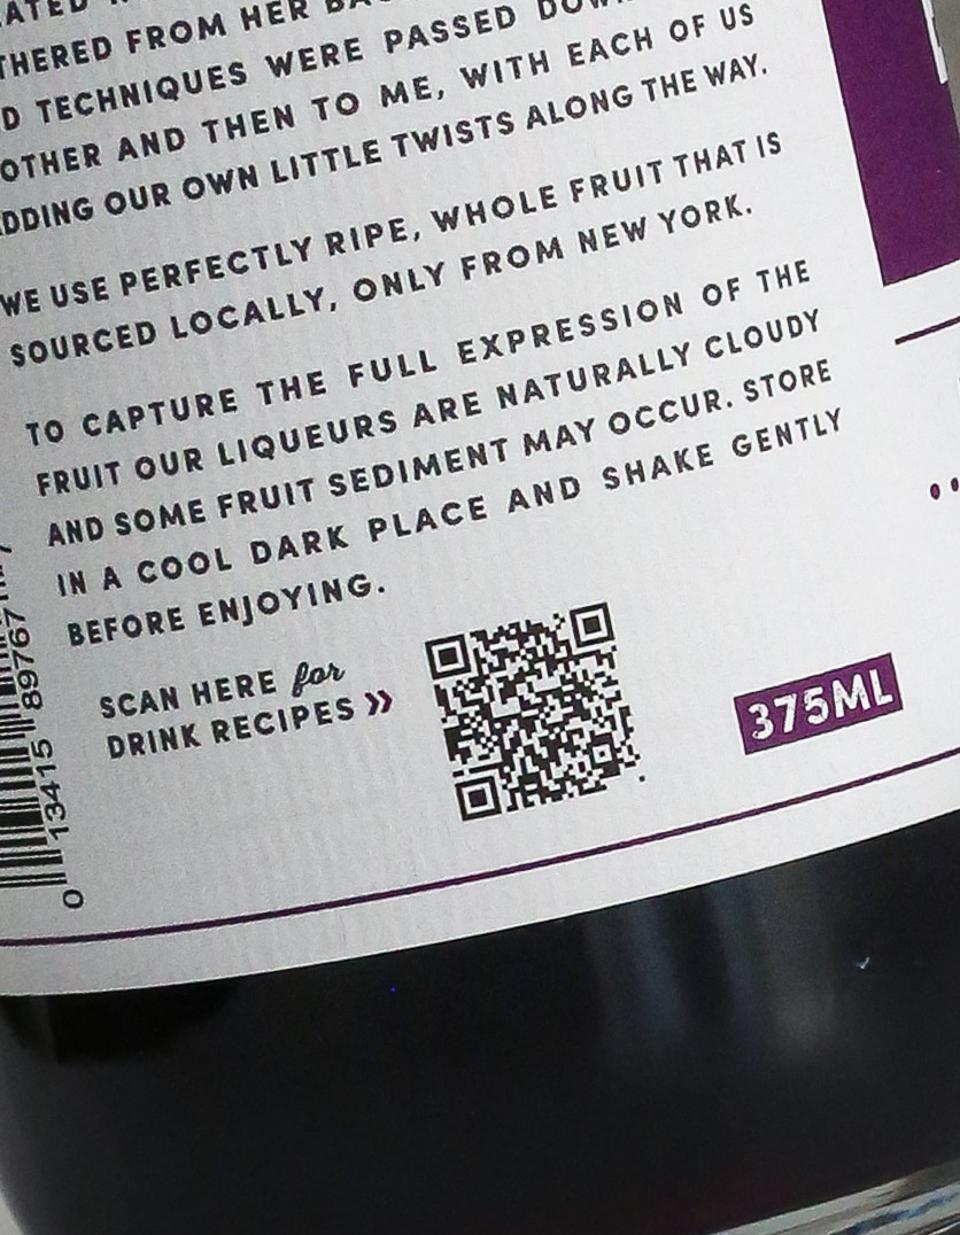 The QR codes on Heimat fruit liqueur bottles take consumers right to recipes.